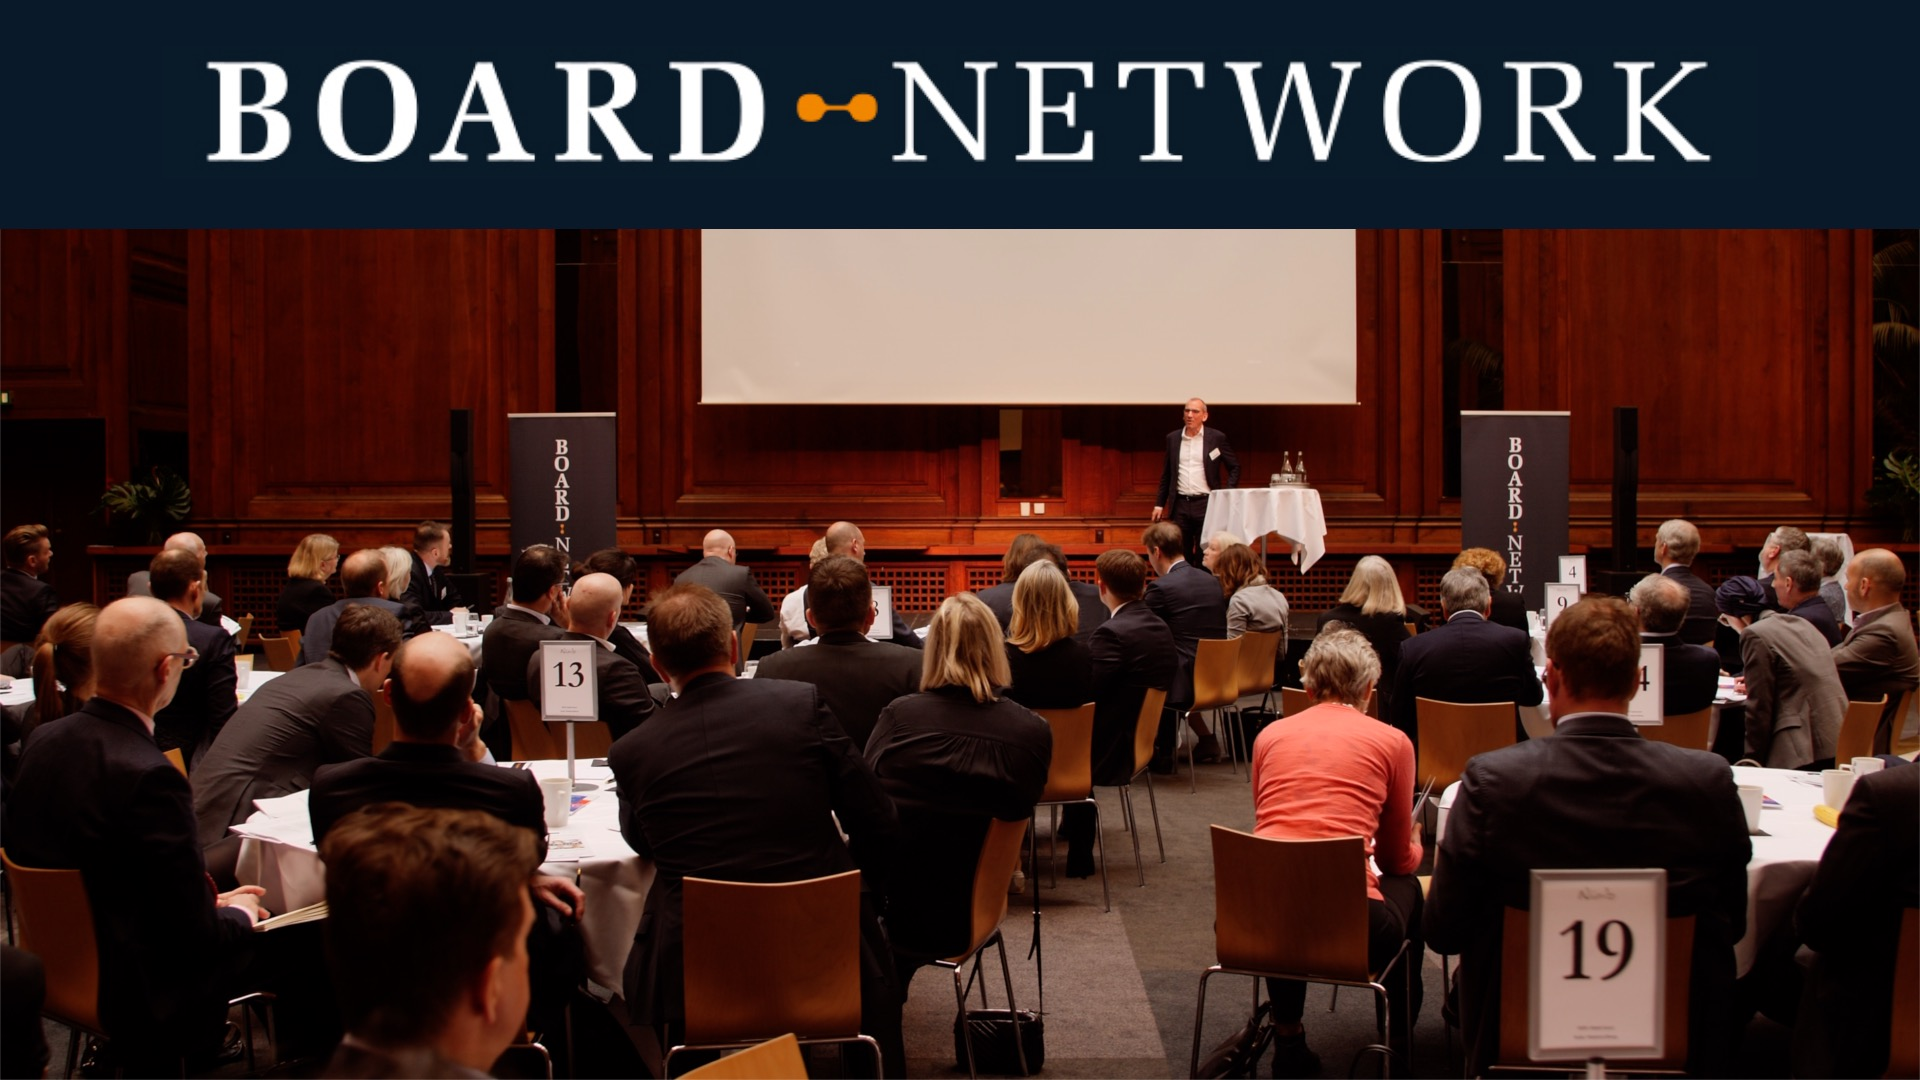 Board Network arrangementer